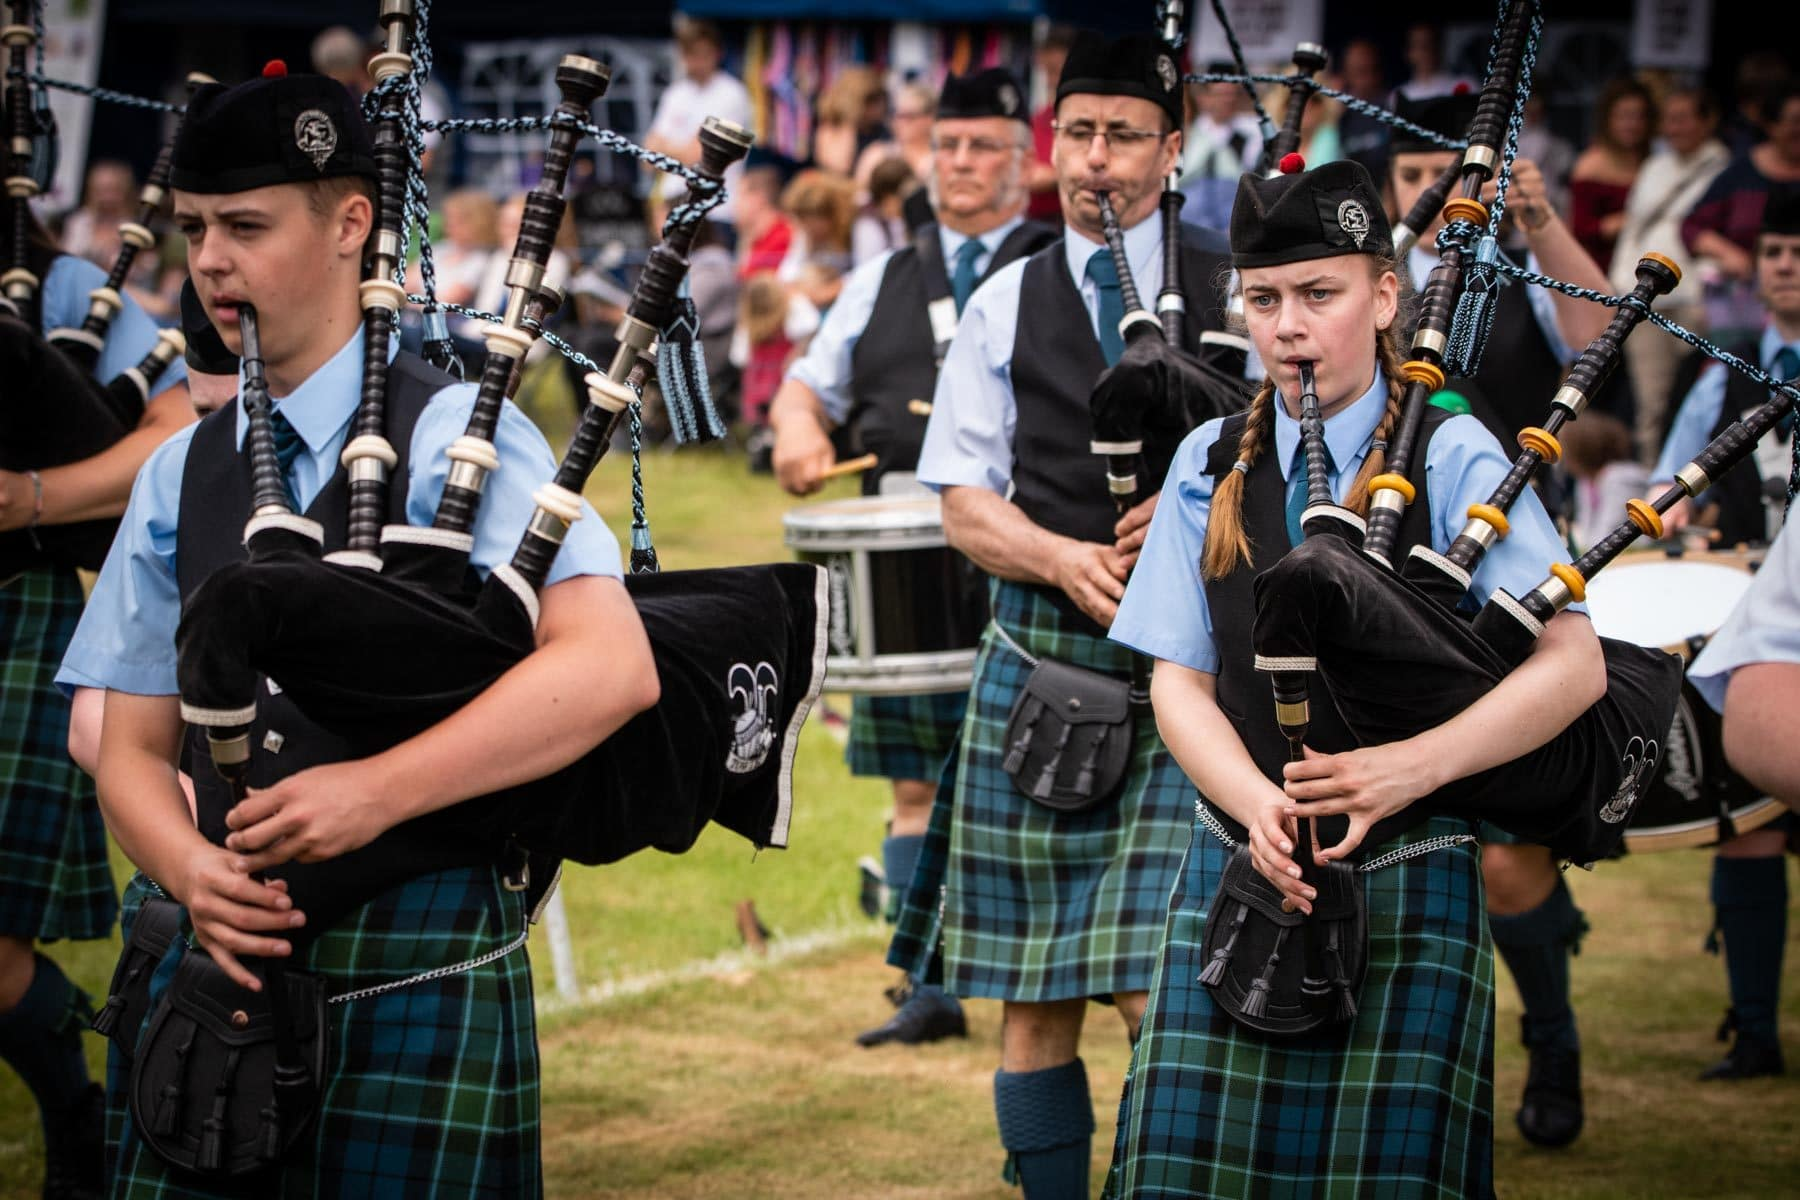 highland-games-the-parade-of-pipe-bands-sir-edwards-roadtrip